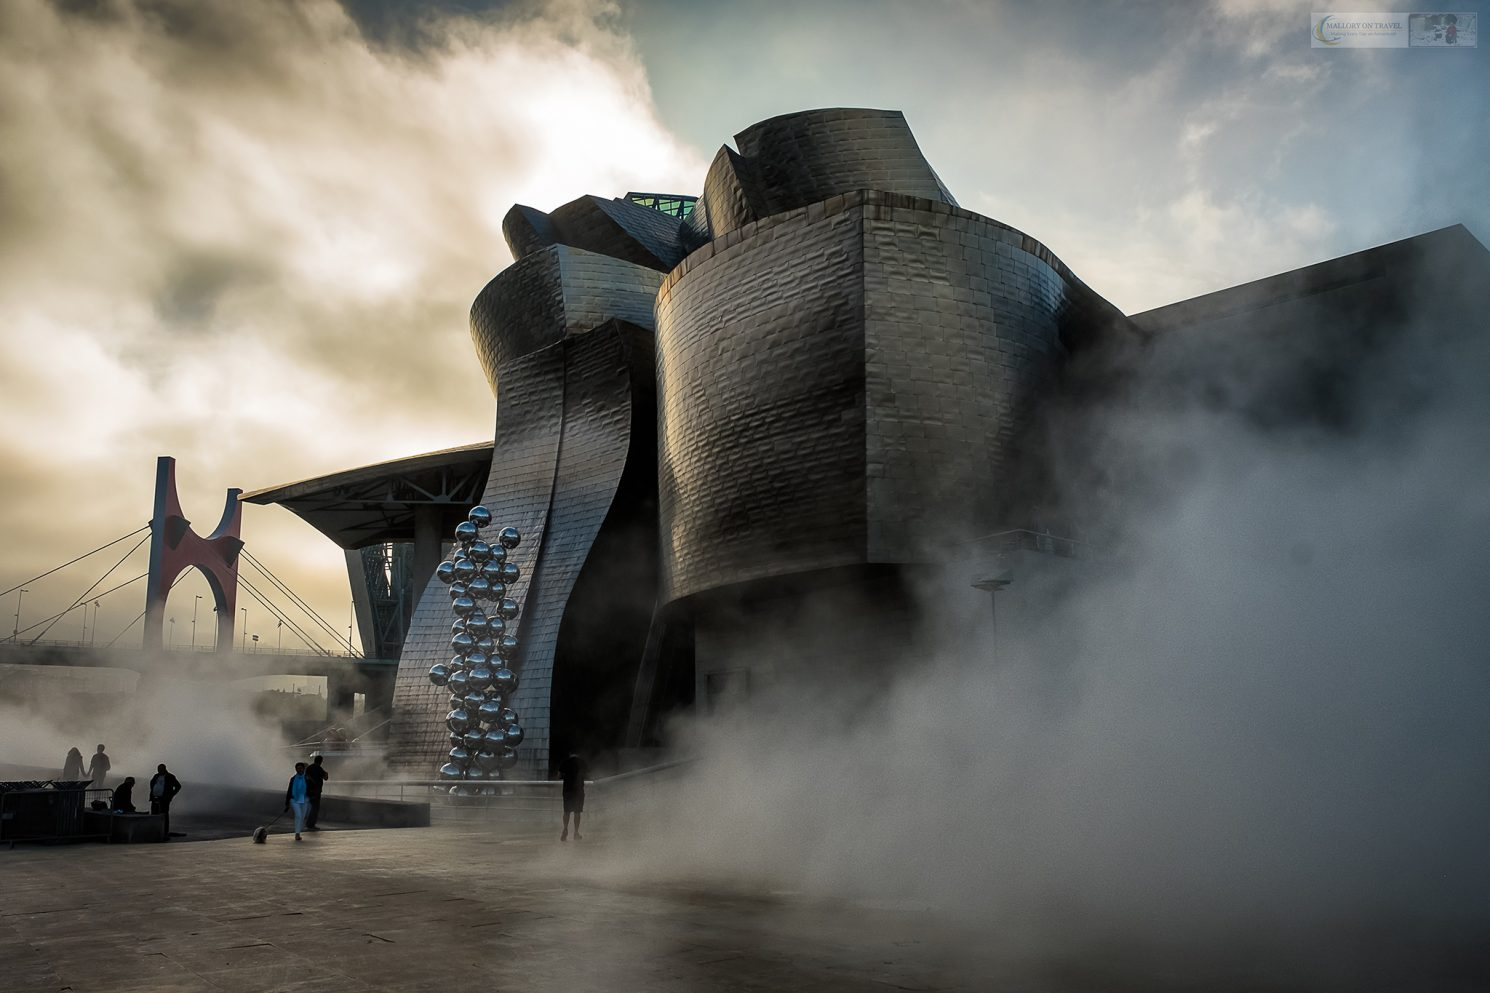 The Guggenheim Museum on the bank of the Nervion River, in Bilbao unofficial capital city of the autonomous region of Basque Country, Spain on Mallory on Travel adventure travel, photography, travel Iain Mallory_Spain 006-2